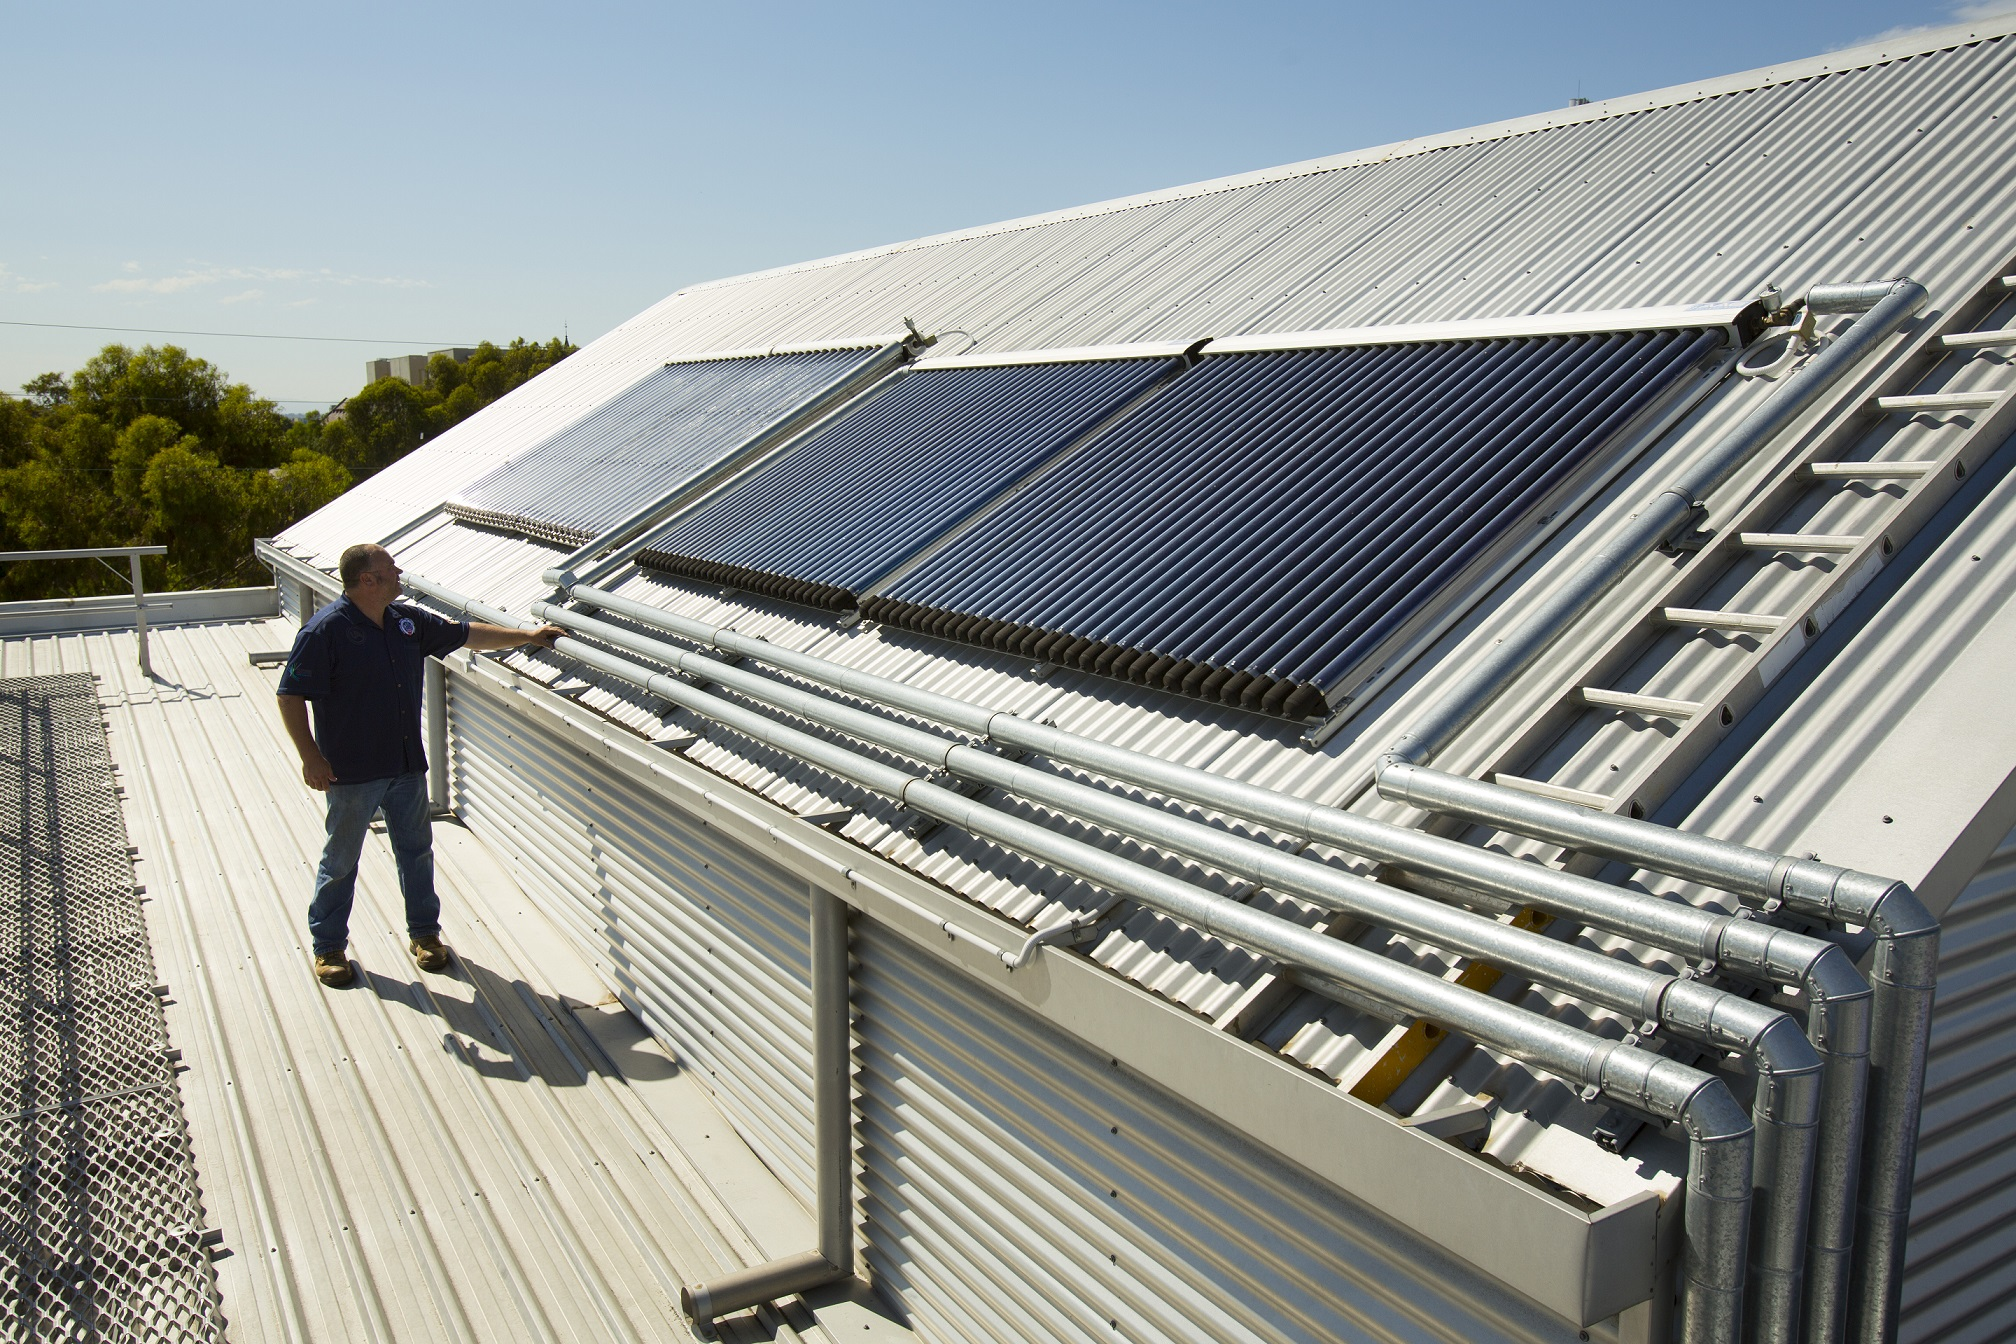 Solar panels on top of an industrial roof